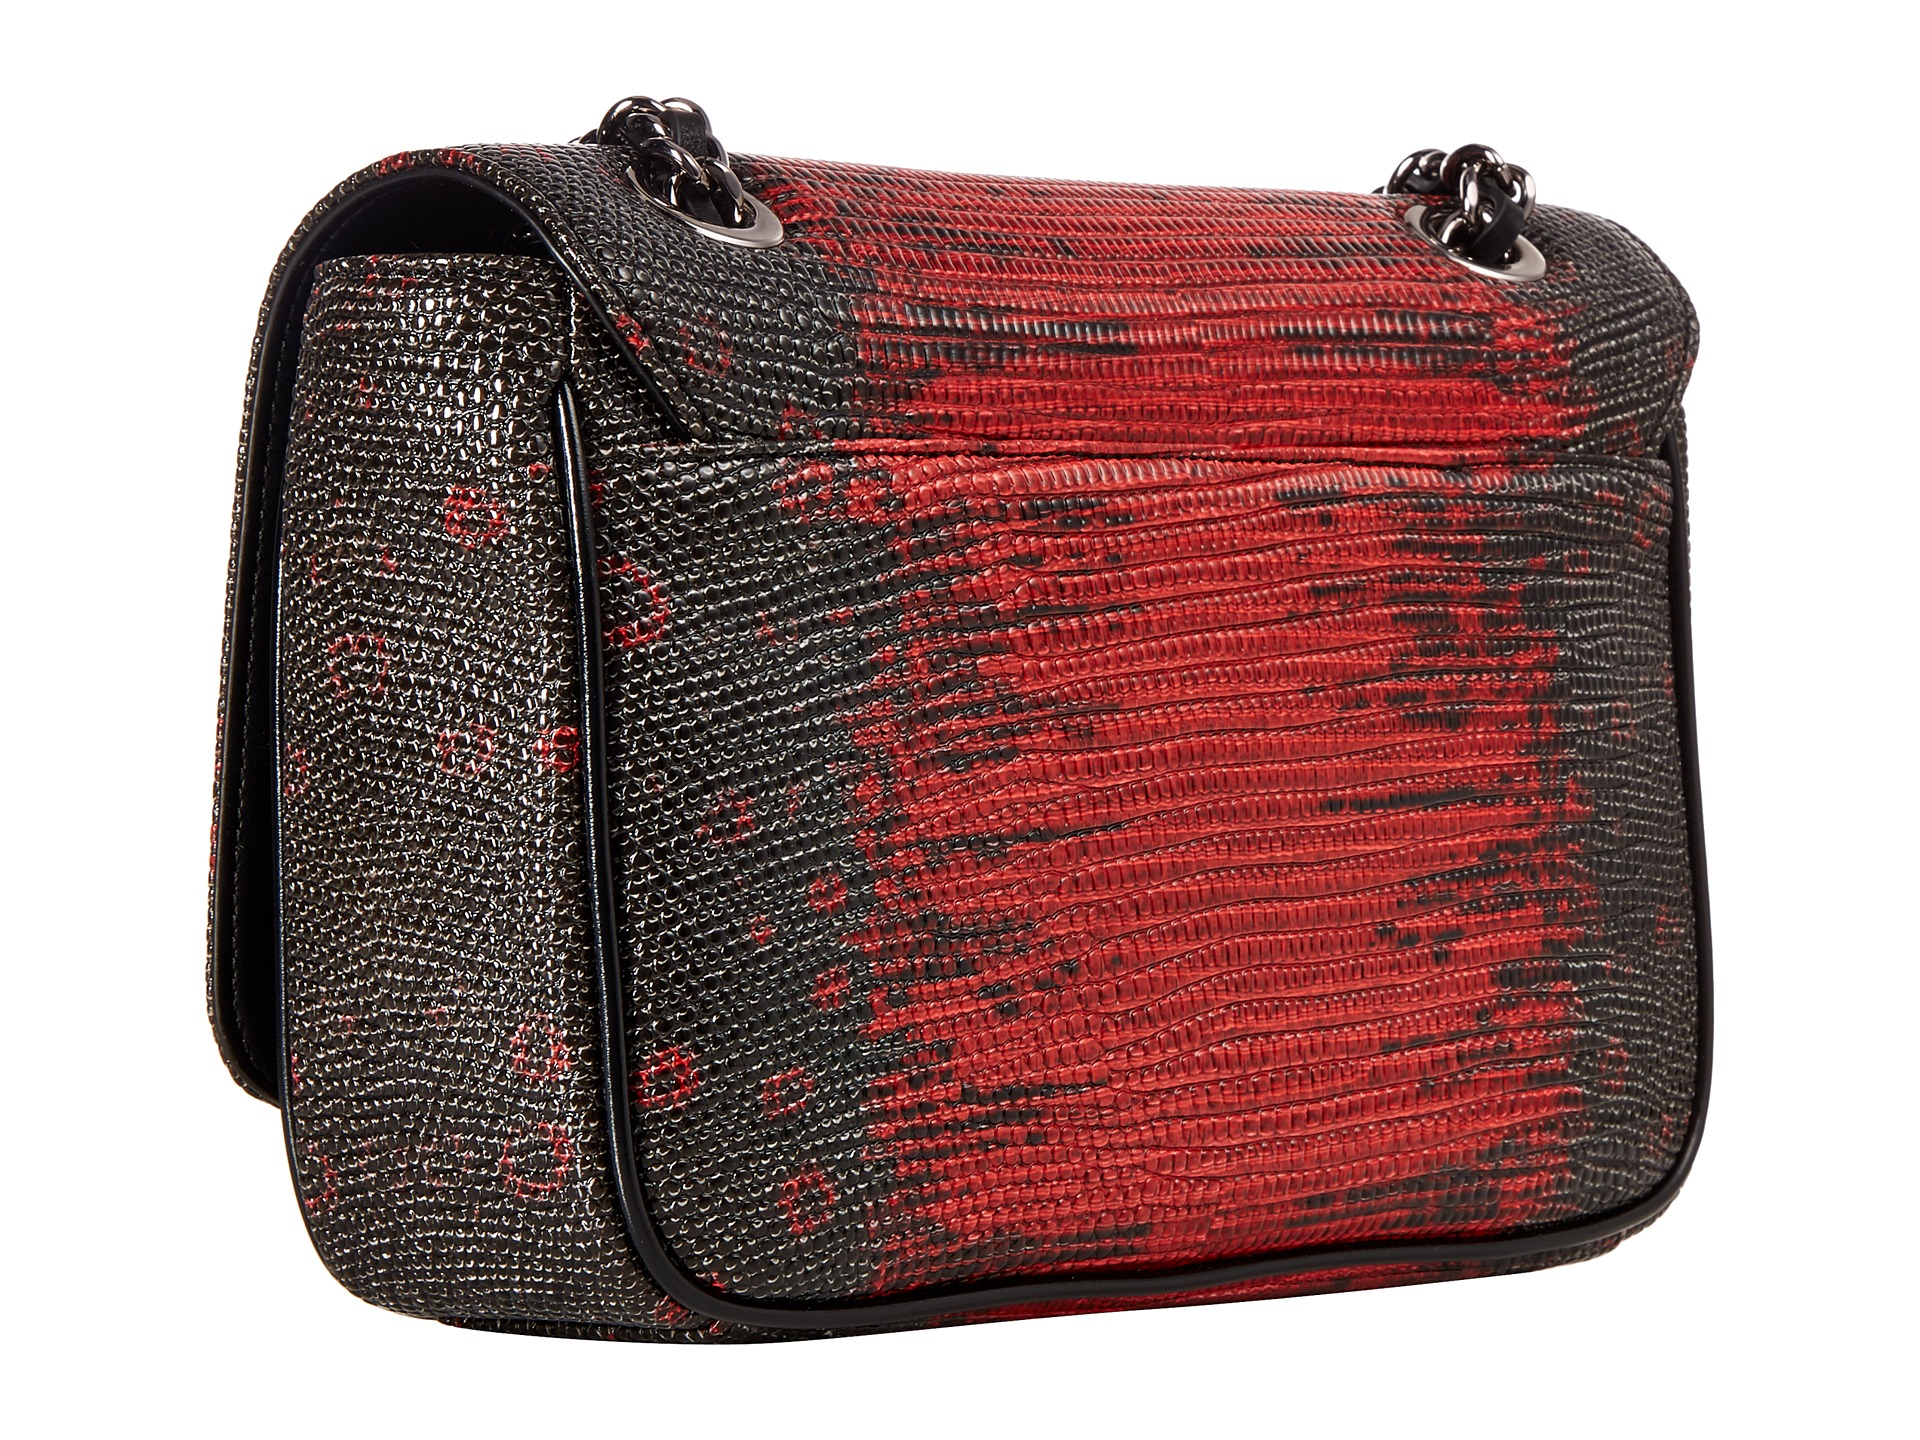 vivienne westwood bag leeds zappos free shipping